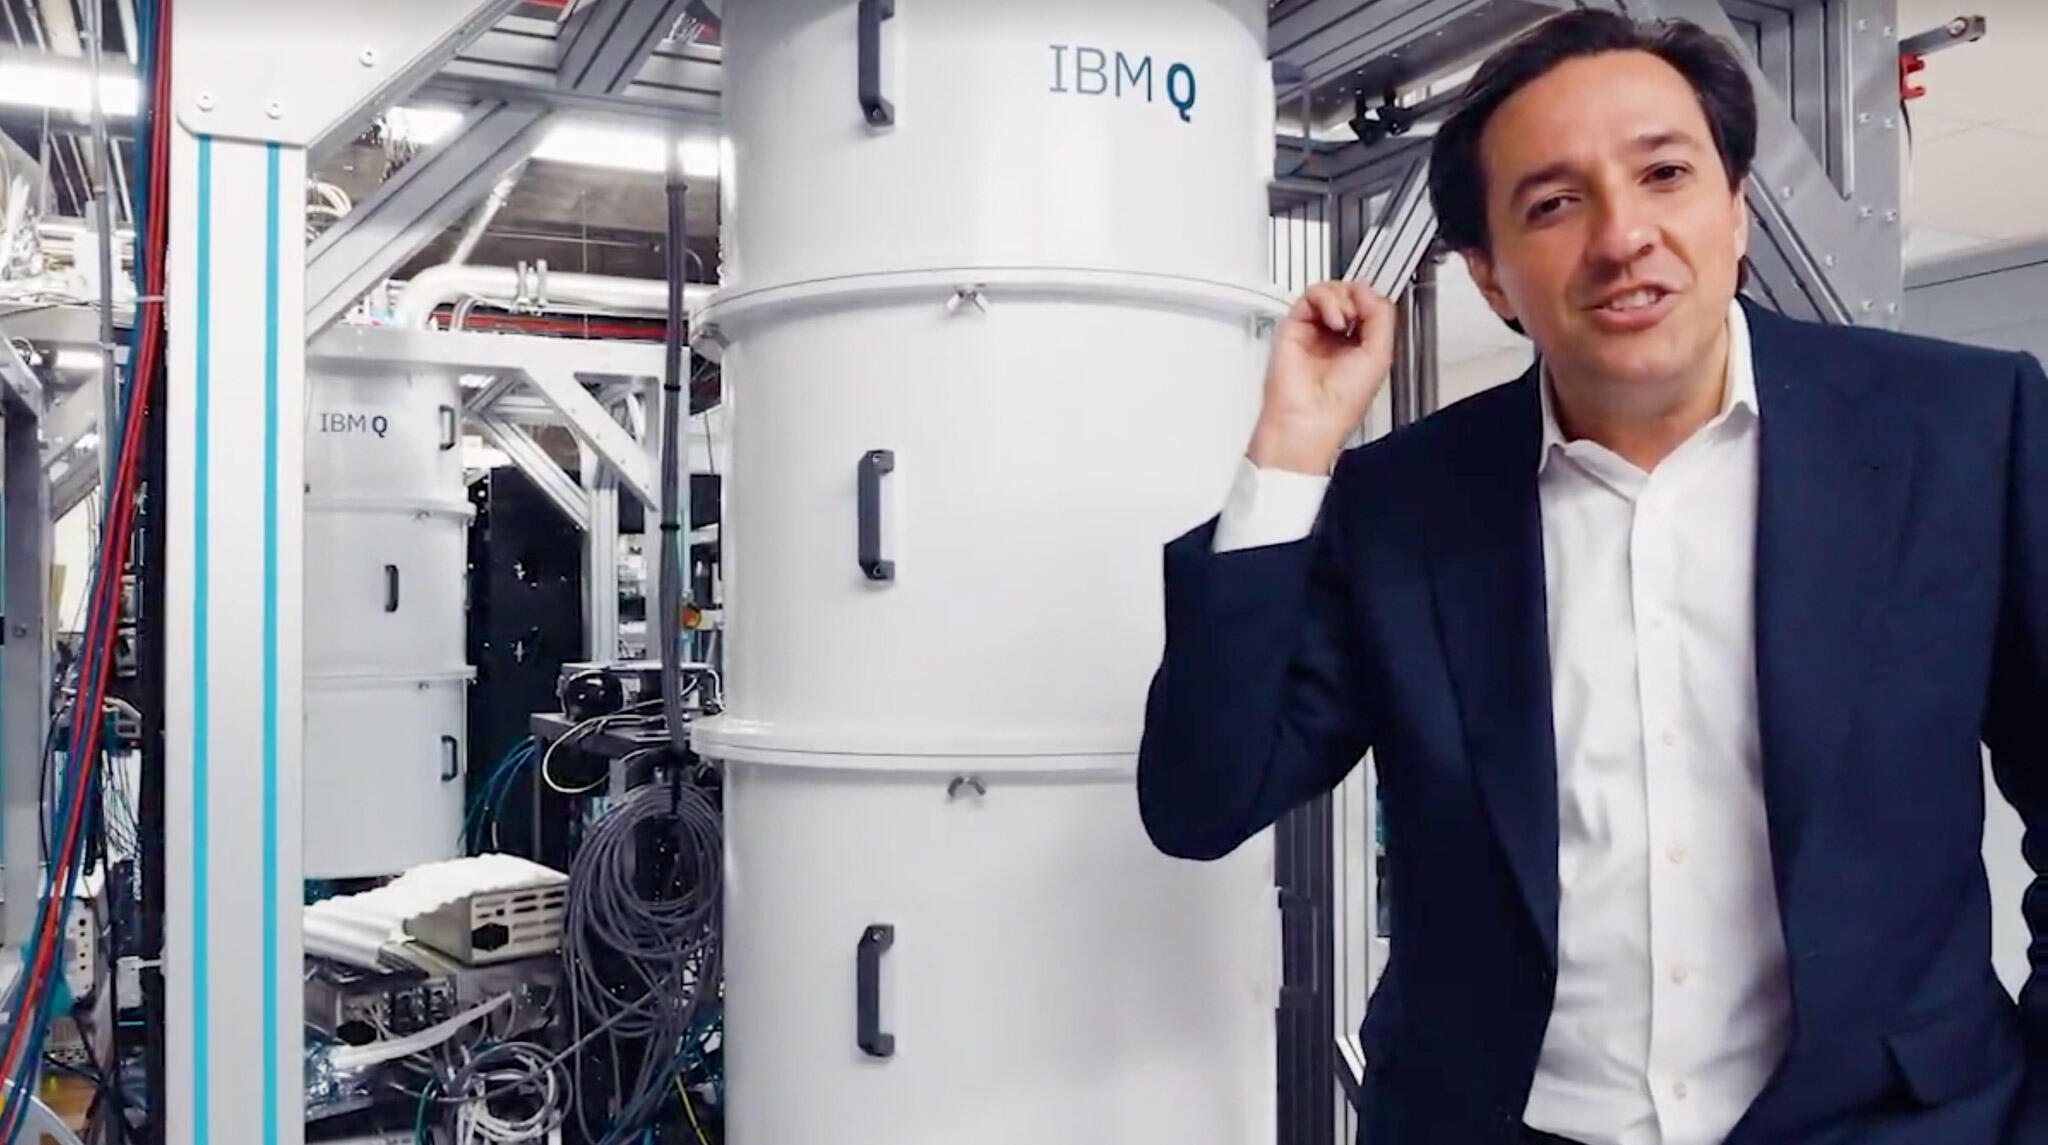 Dario Gil, head of IBM Research, shows off one of IBM's 18 quantum computers during its Think conference.